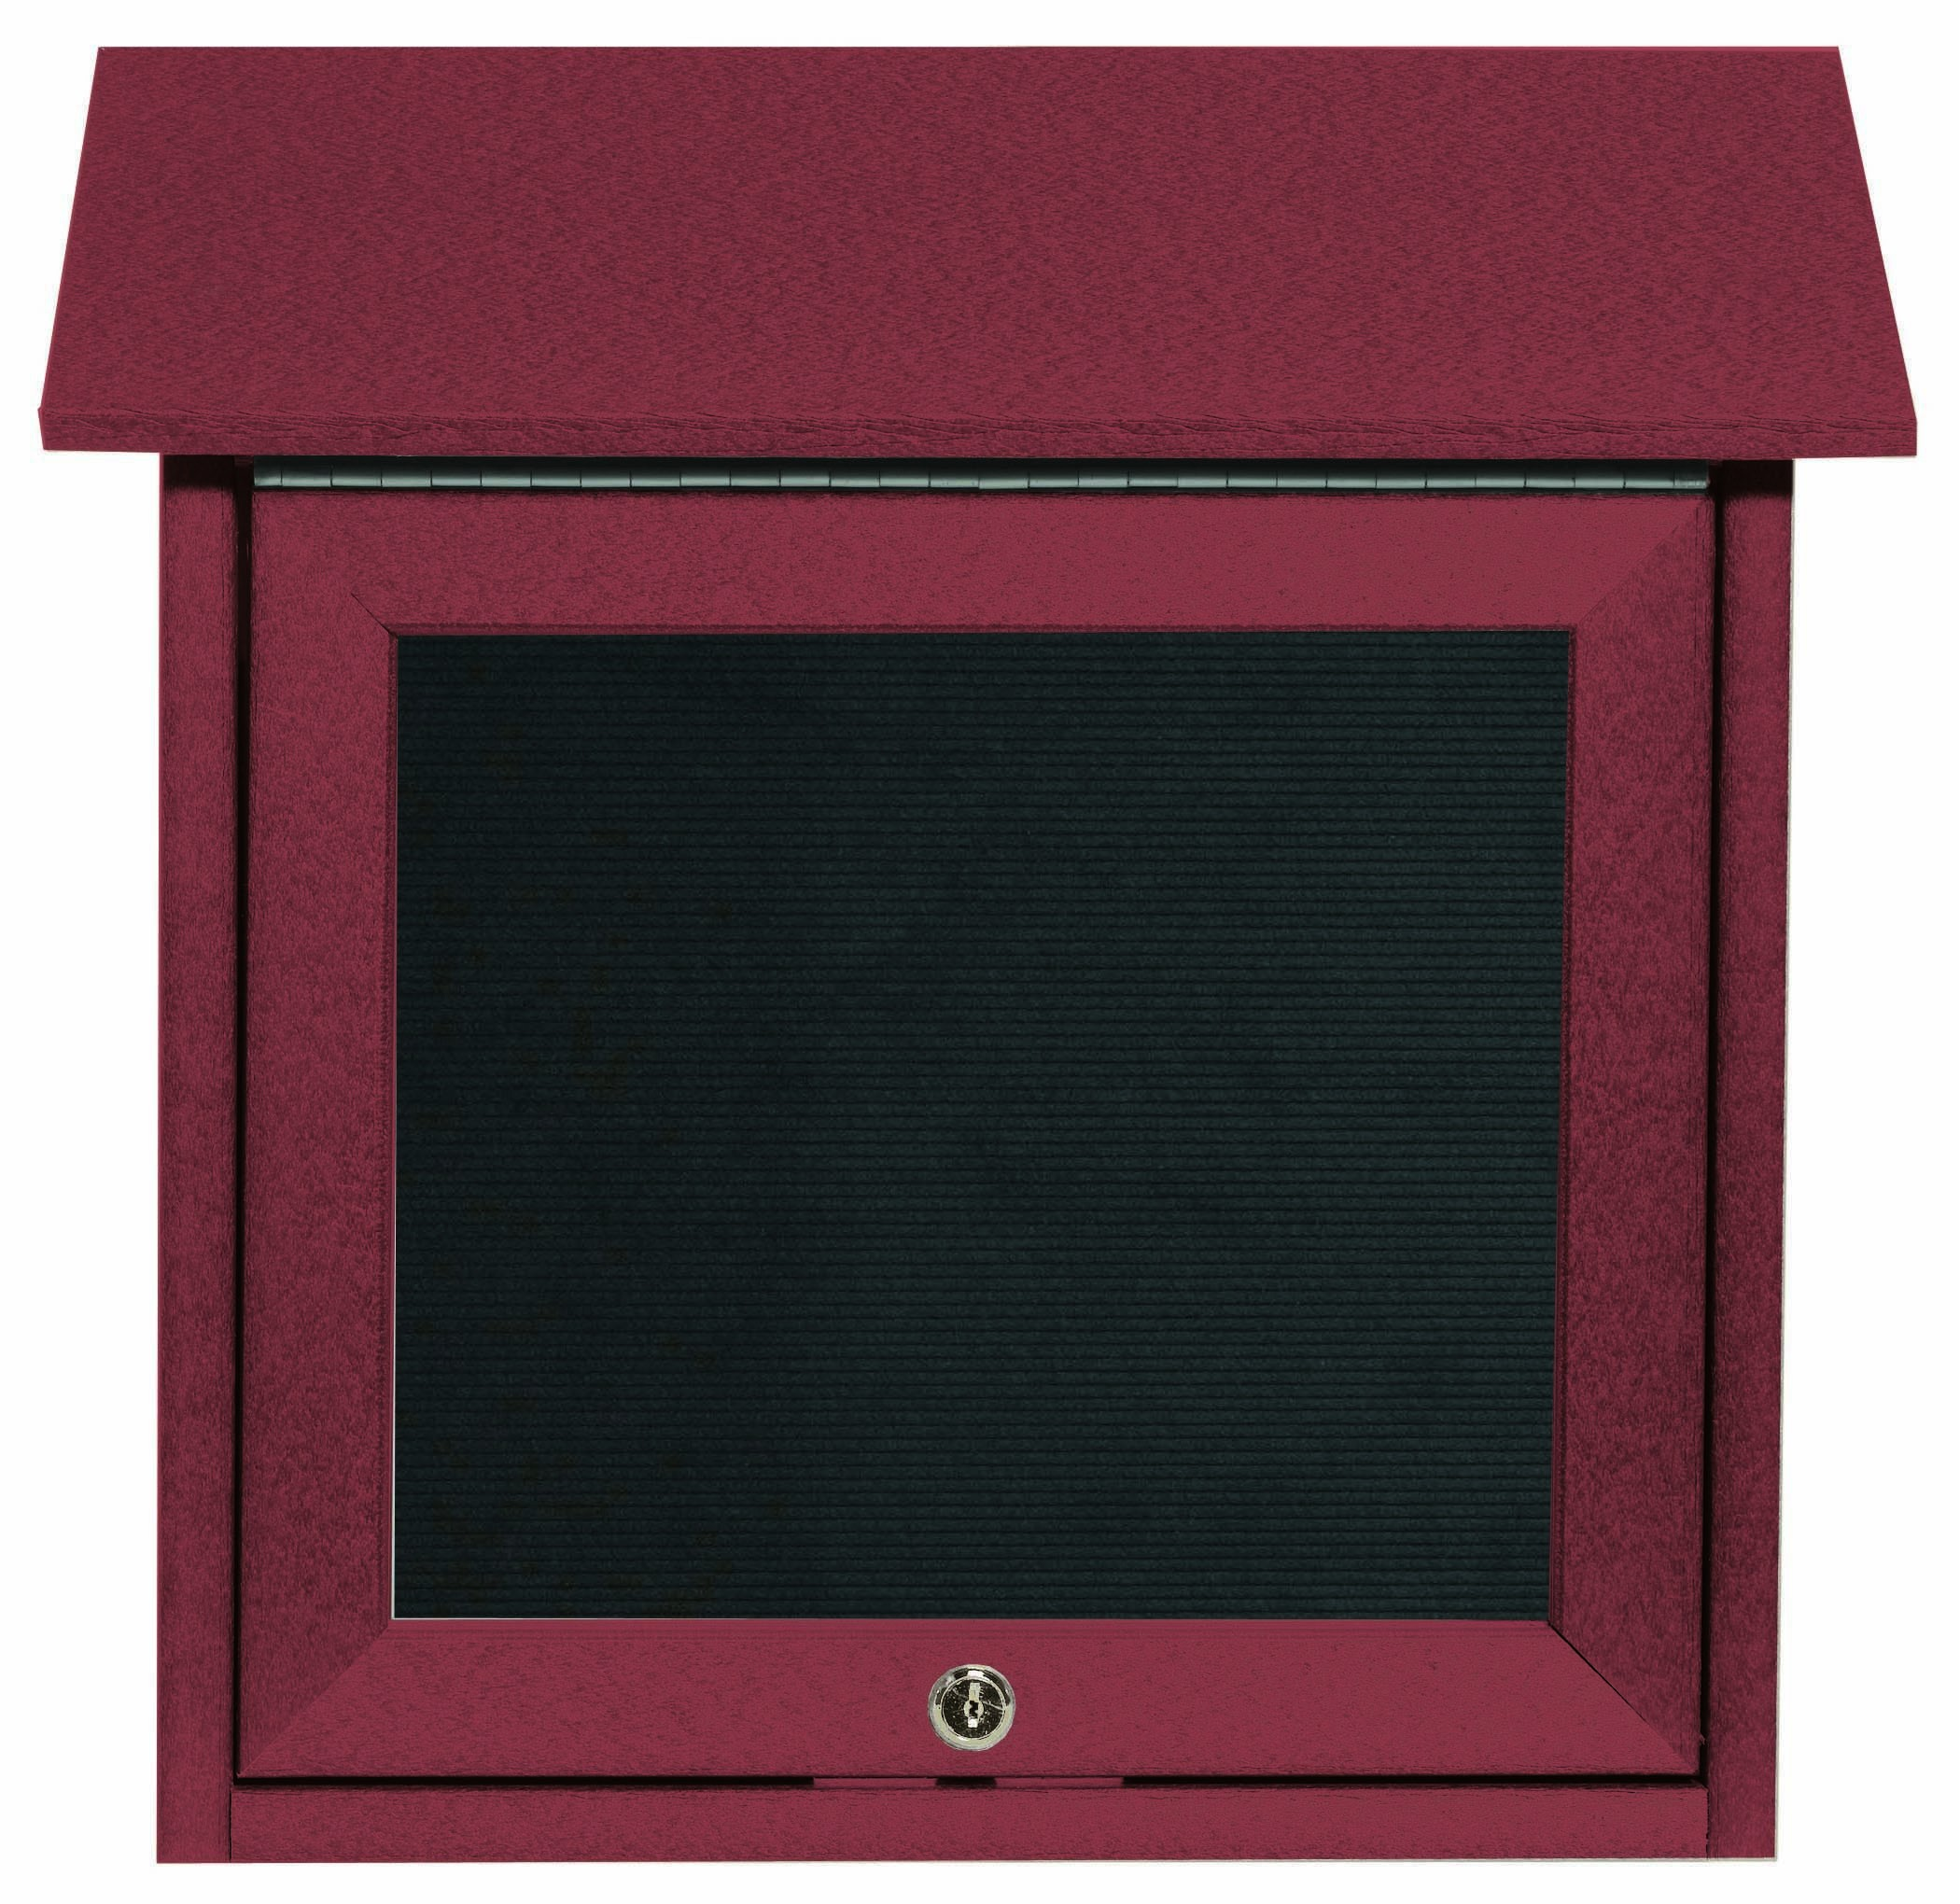 Rosewood Slimline Series Top Hinged Single Door Plastic Lumber Message Center with Letter Board-18